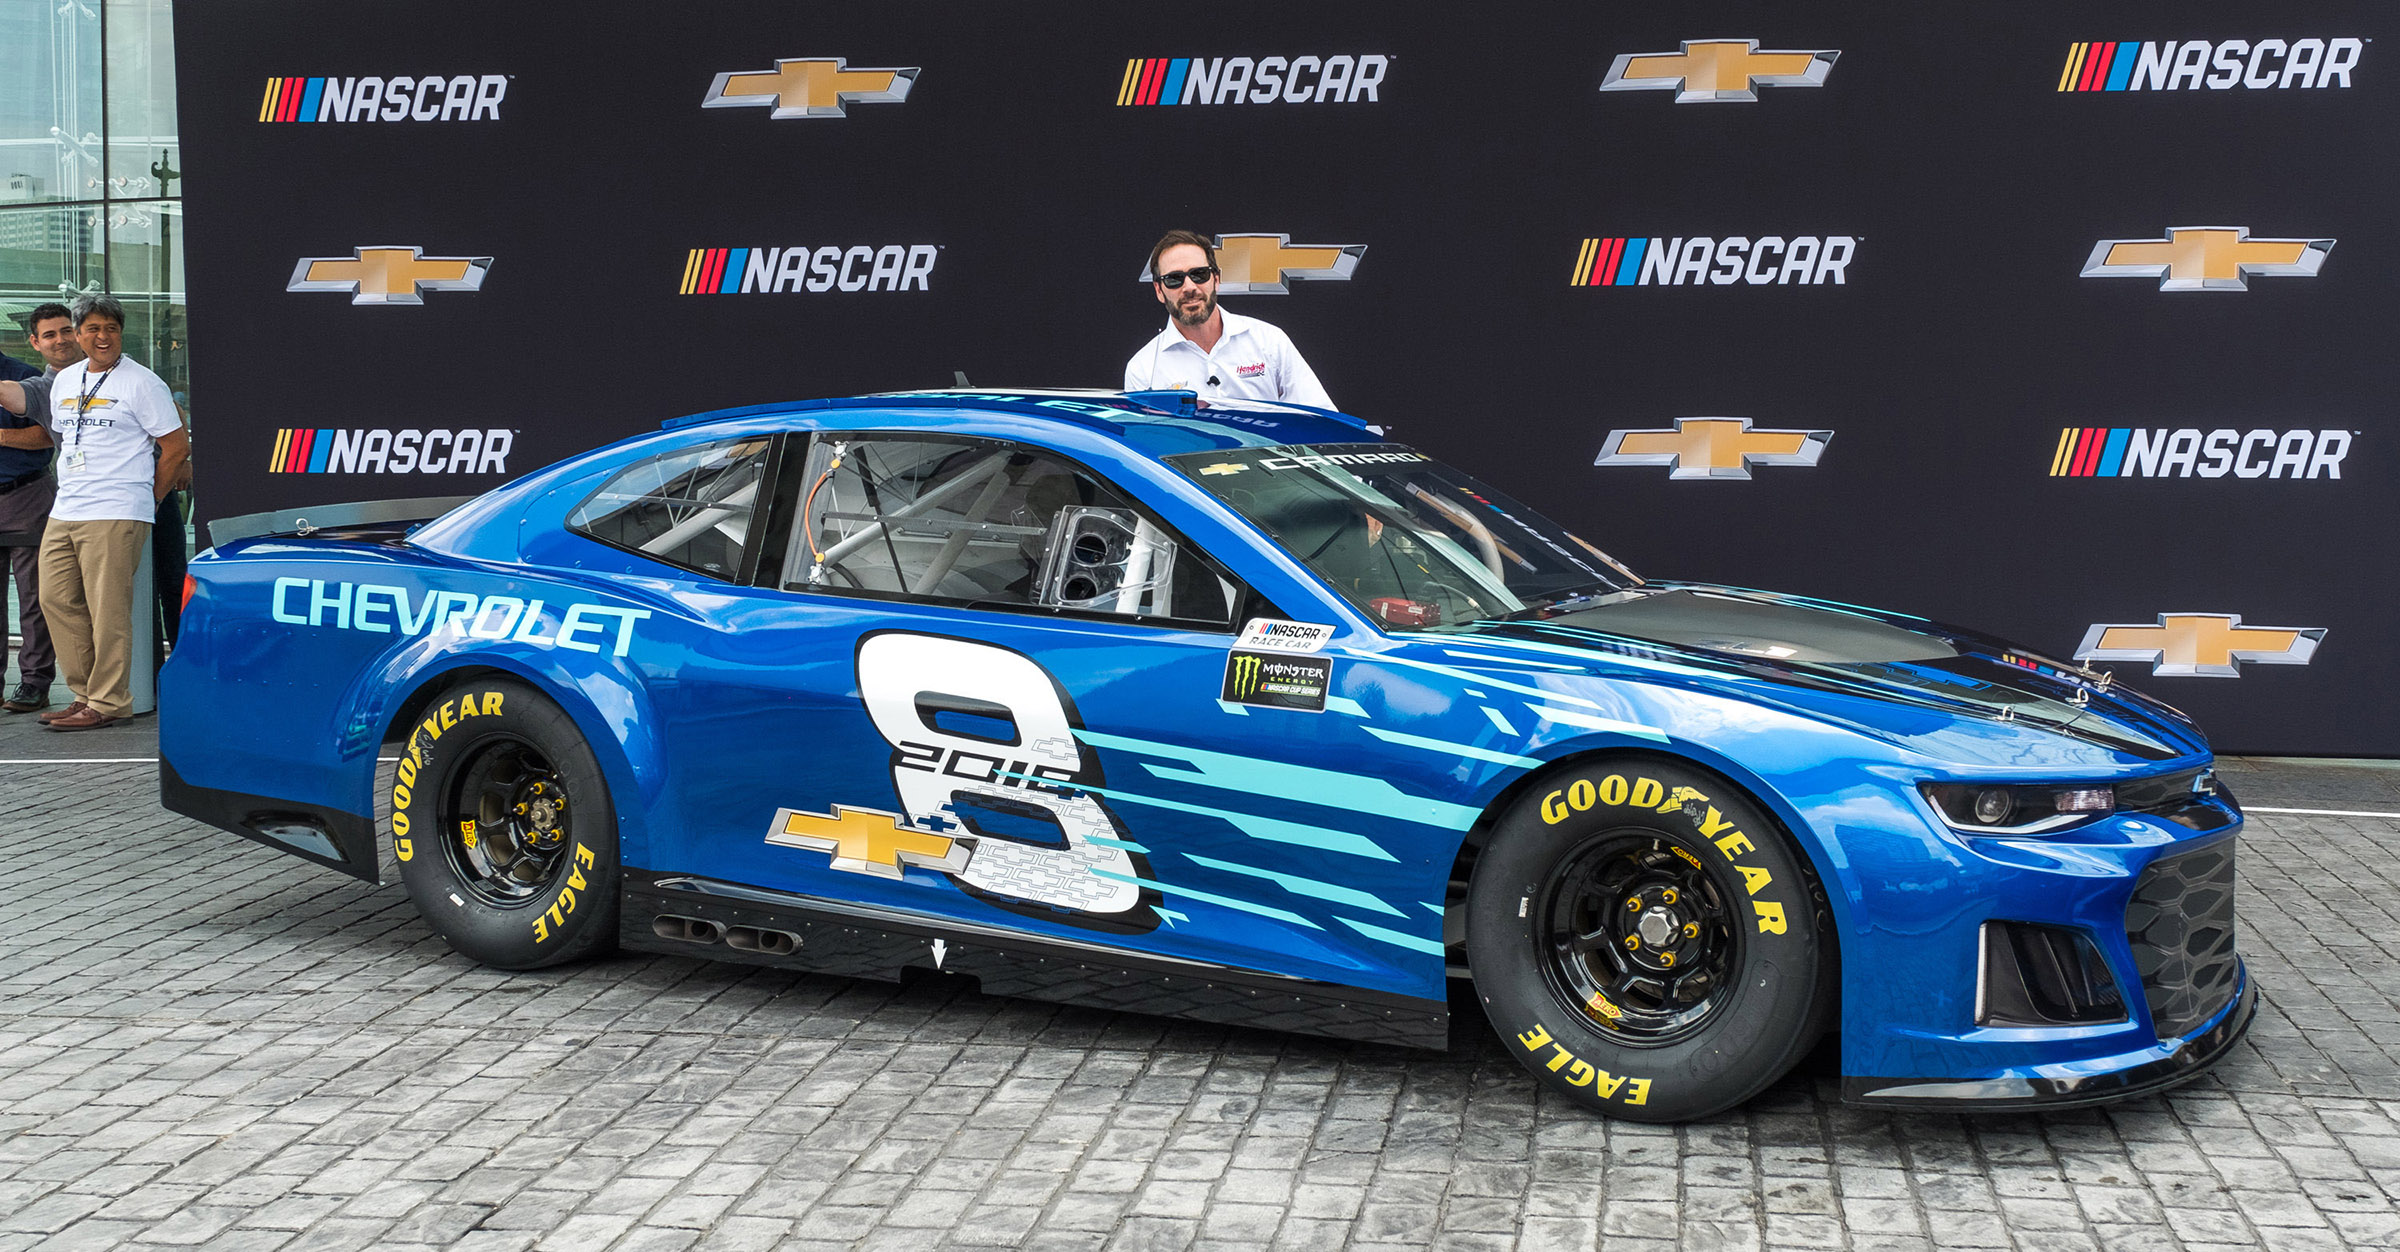 Revealed 2018 Chevrolet Camaro Zl1 Nascar Race Car